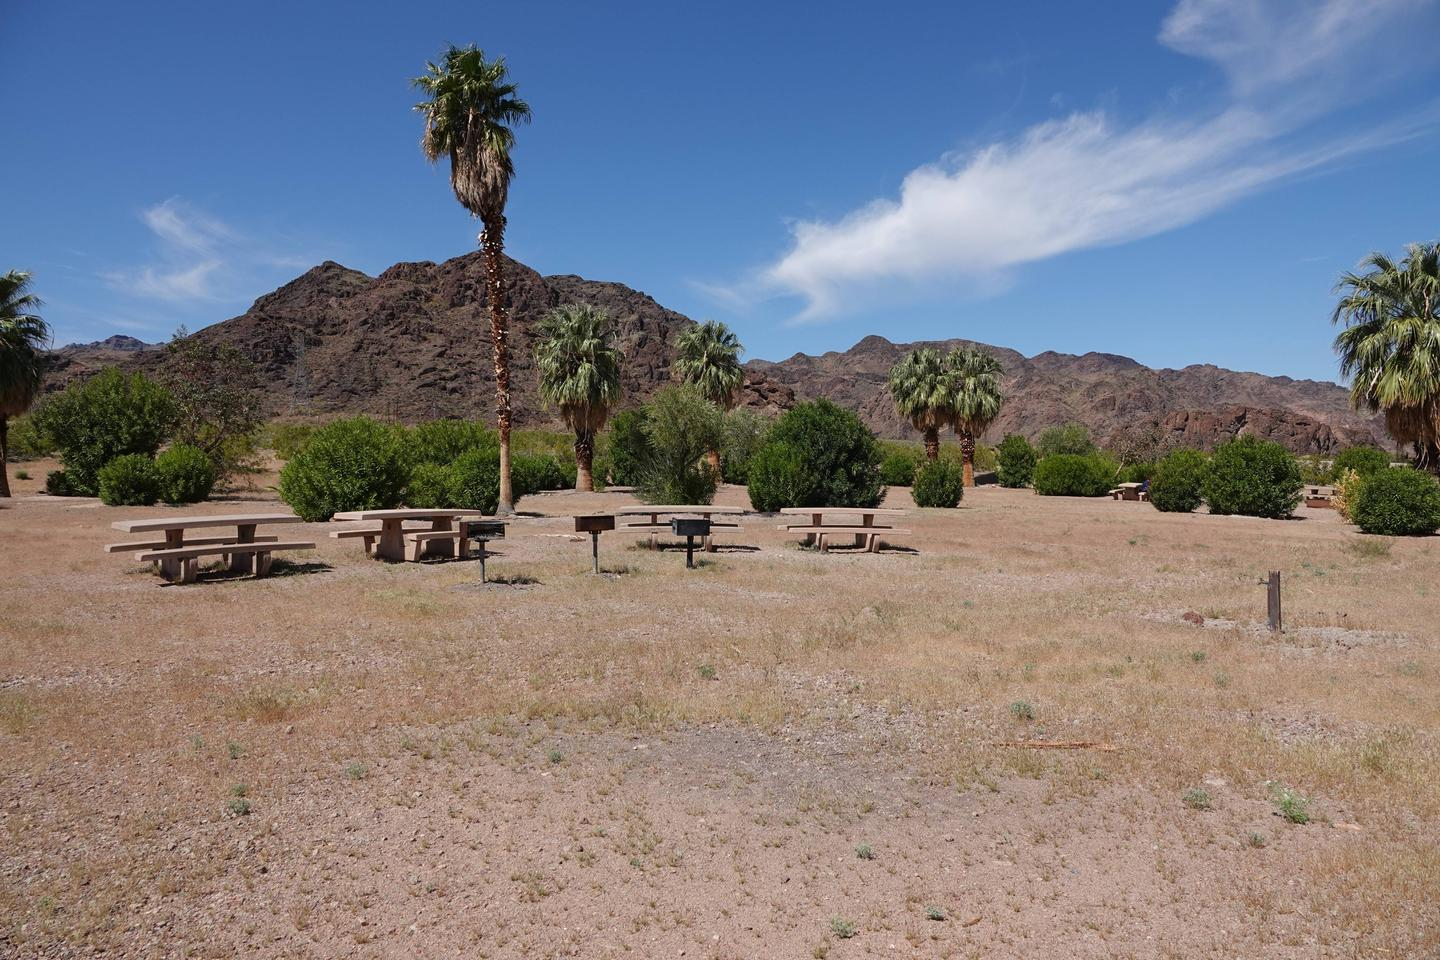 Campsite tables located in a desert settingBoulder Beach Group Site 4